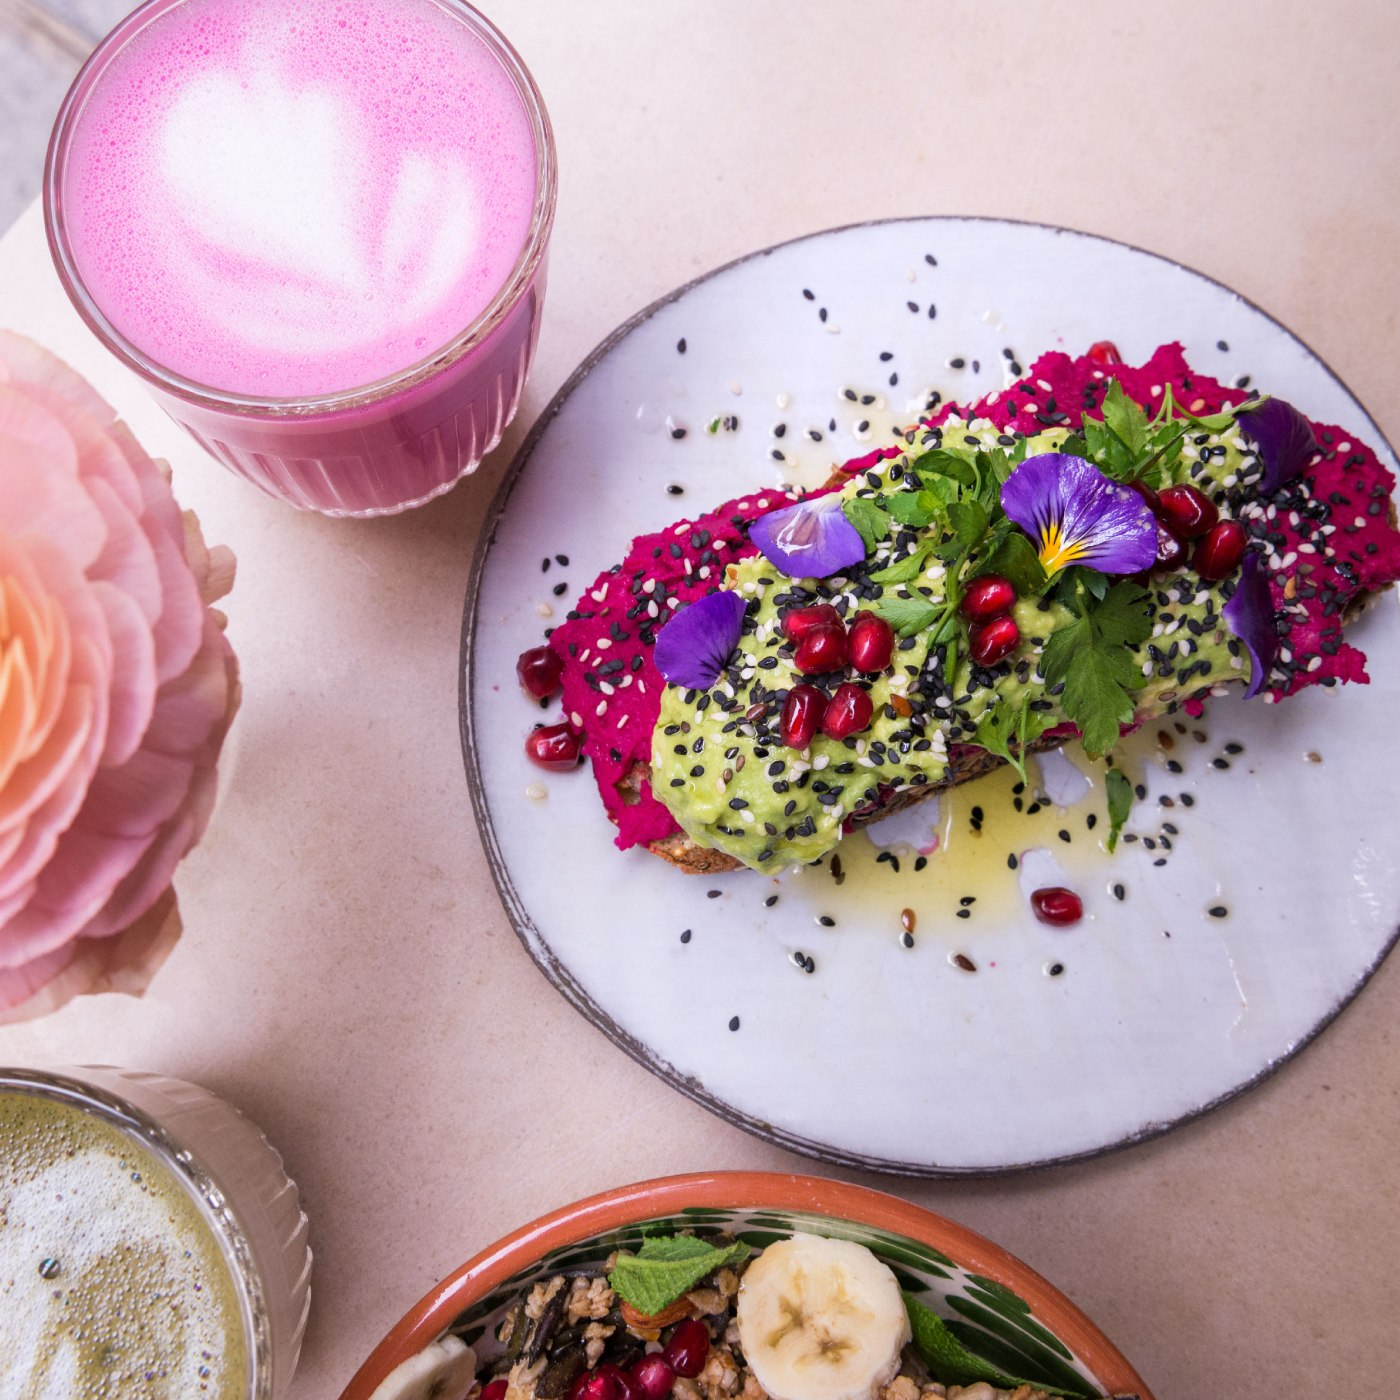 Le sublime avocado toast du Café Berry